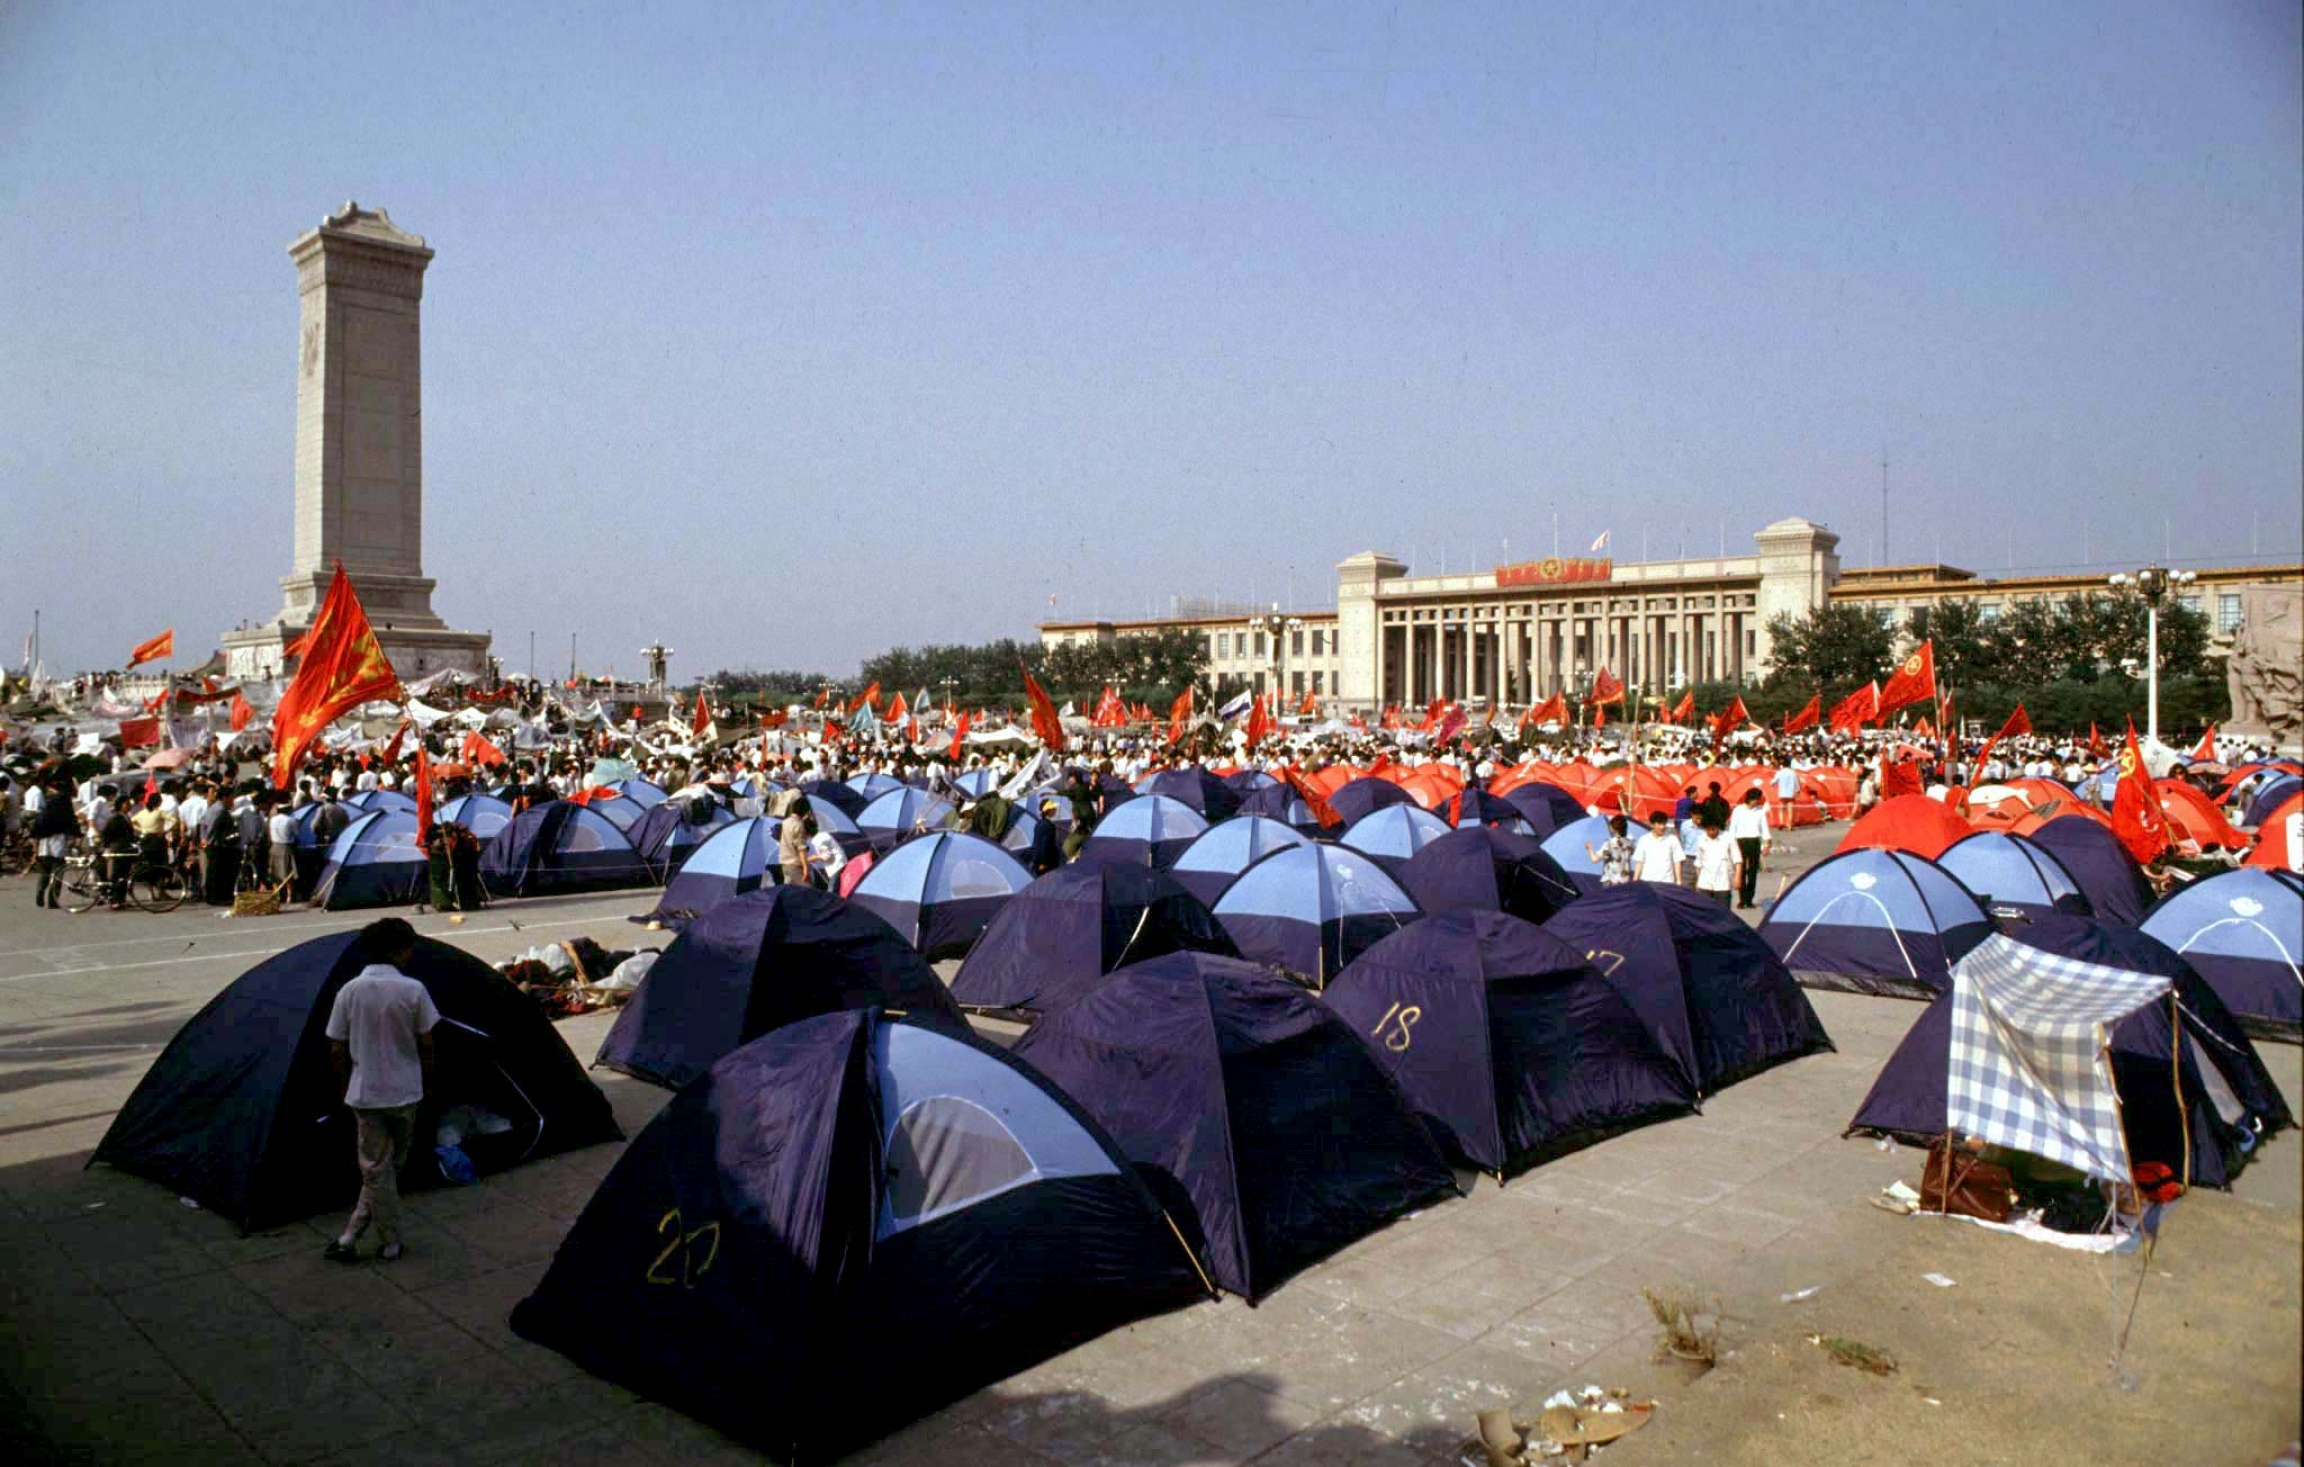 Tents fill up Tiananmen Square.